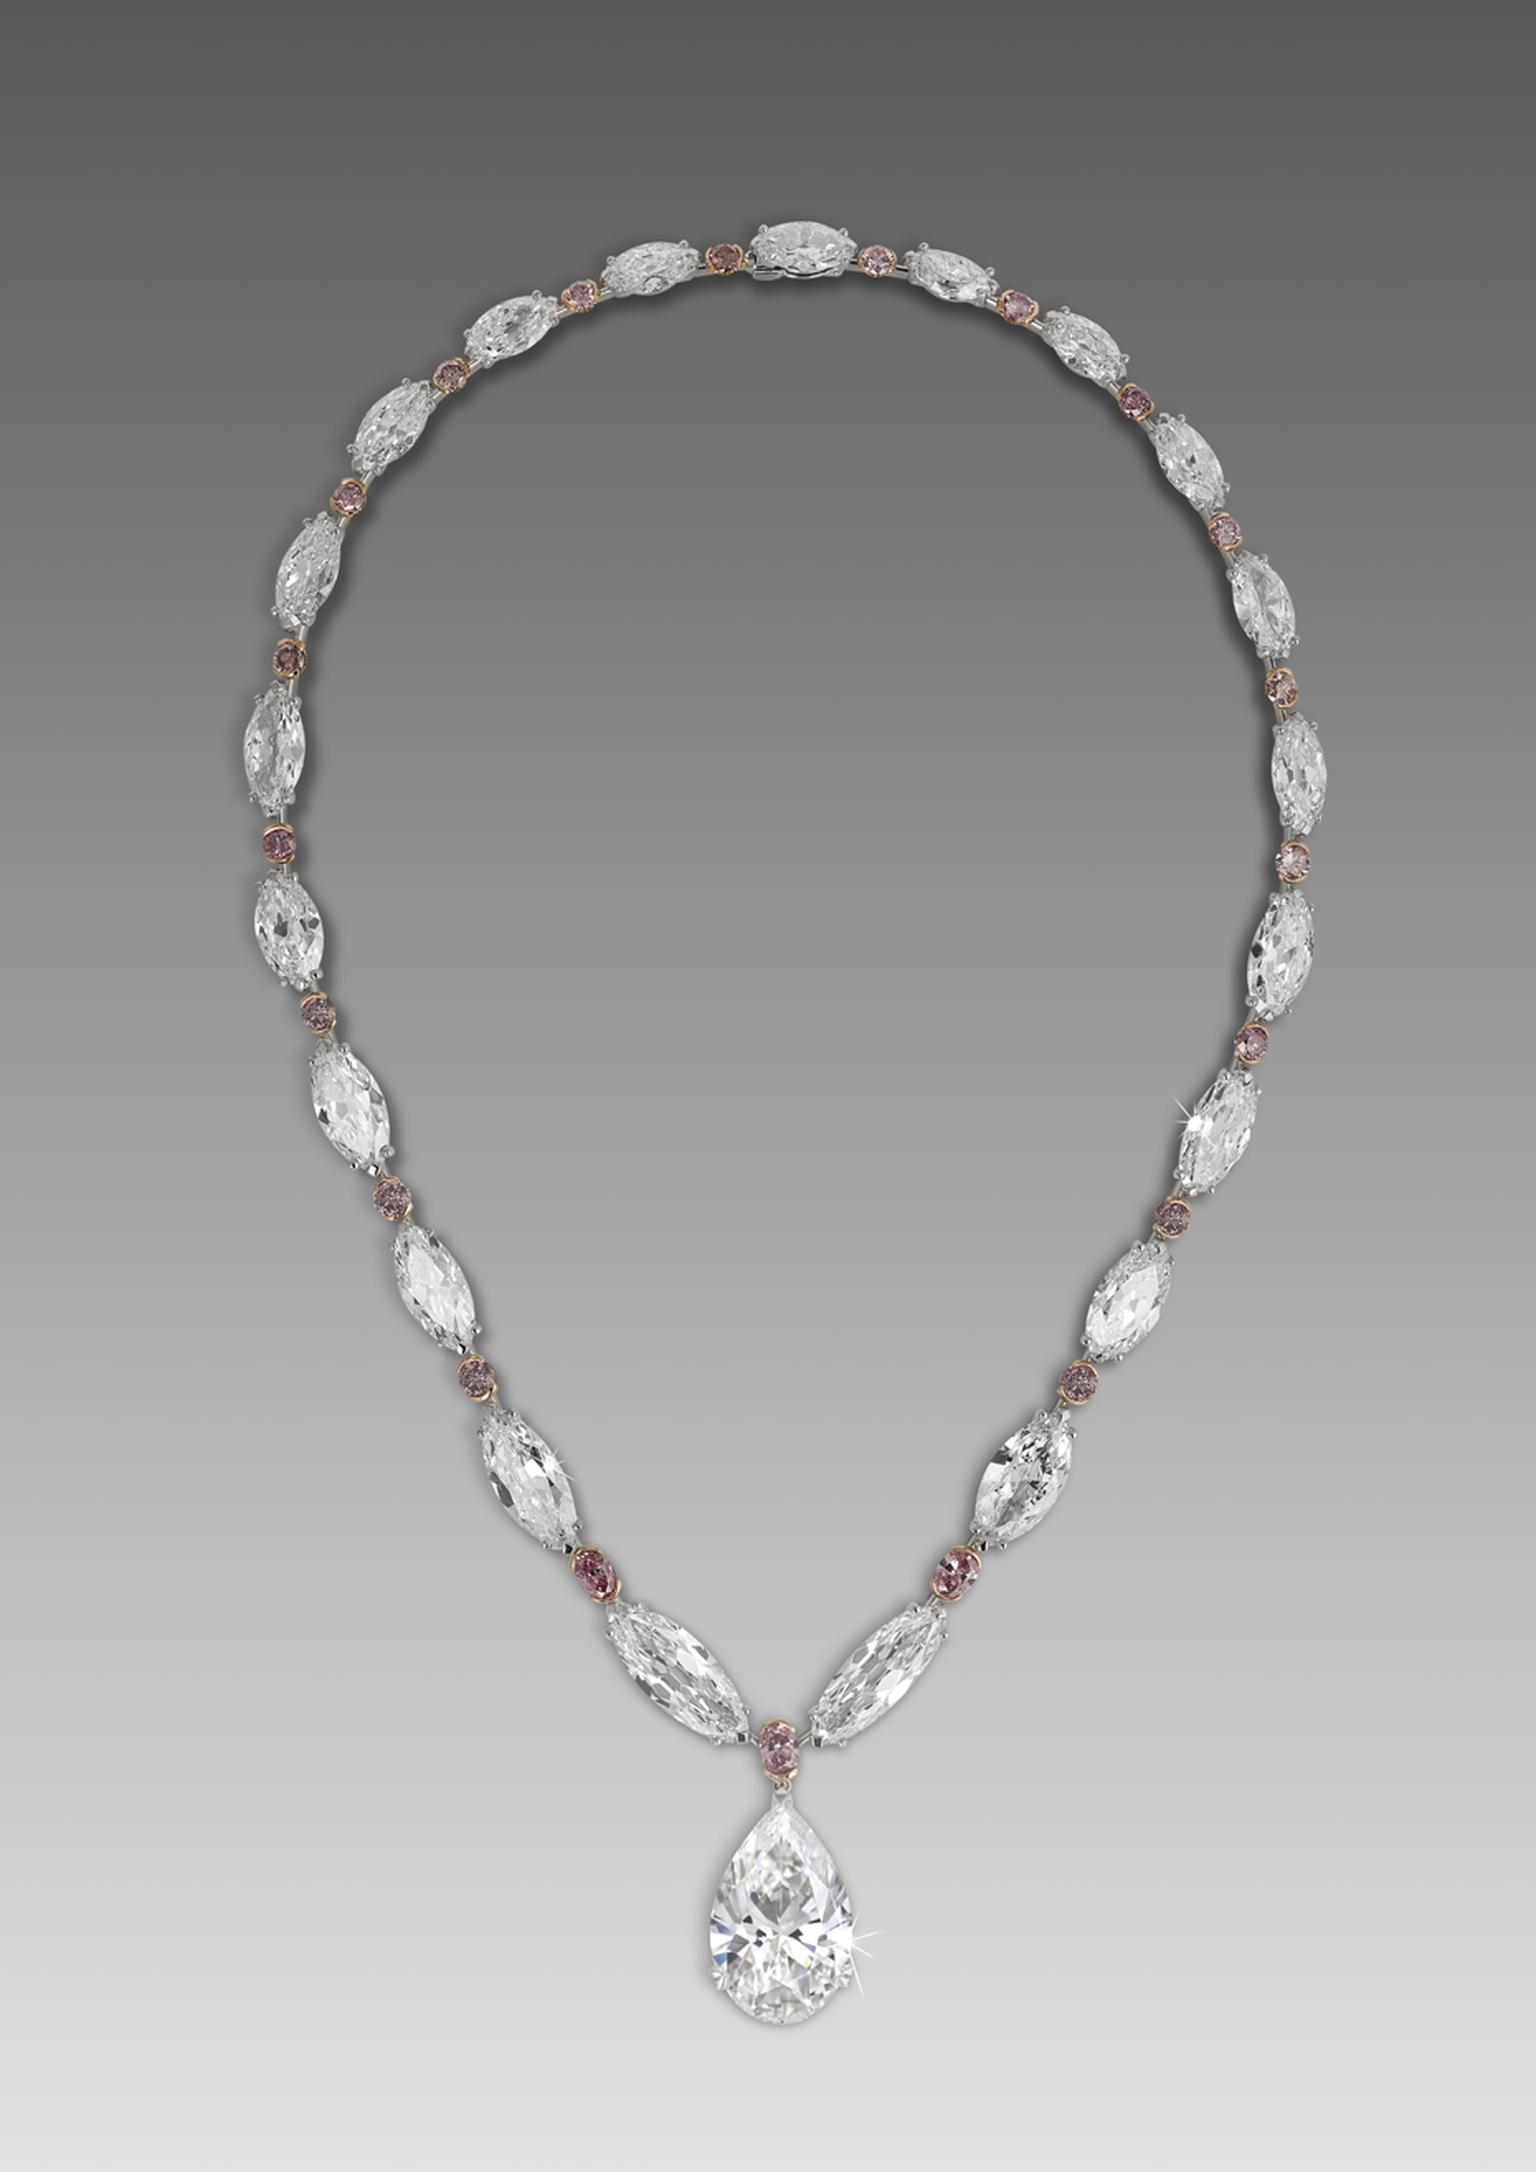 David Morris 22.22ct D IF pear-shaped diamond drop on an antique marquise-cut white diamond and brilliant-cut pink diamond necklace.